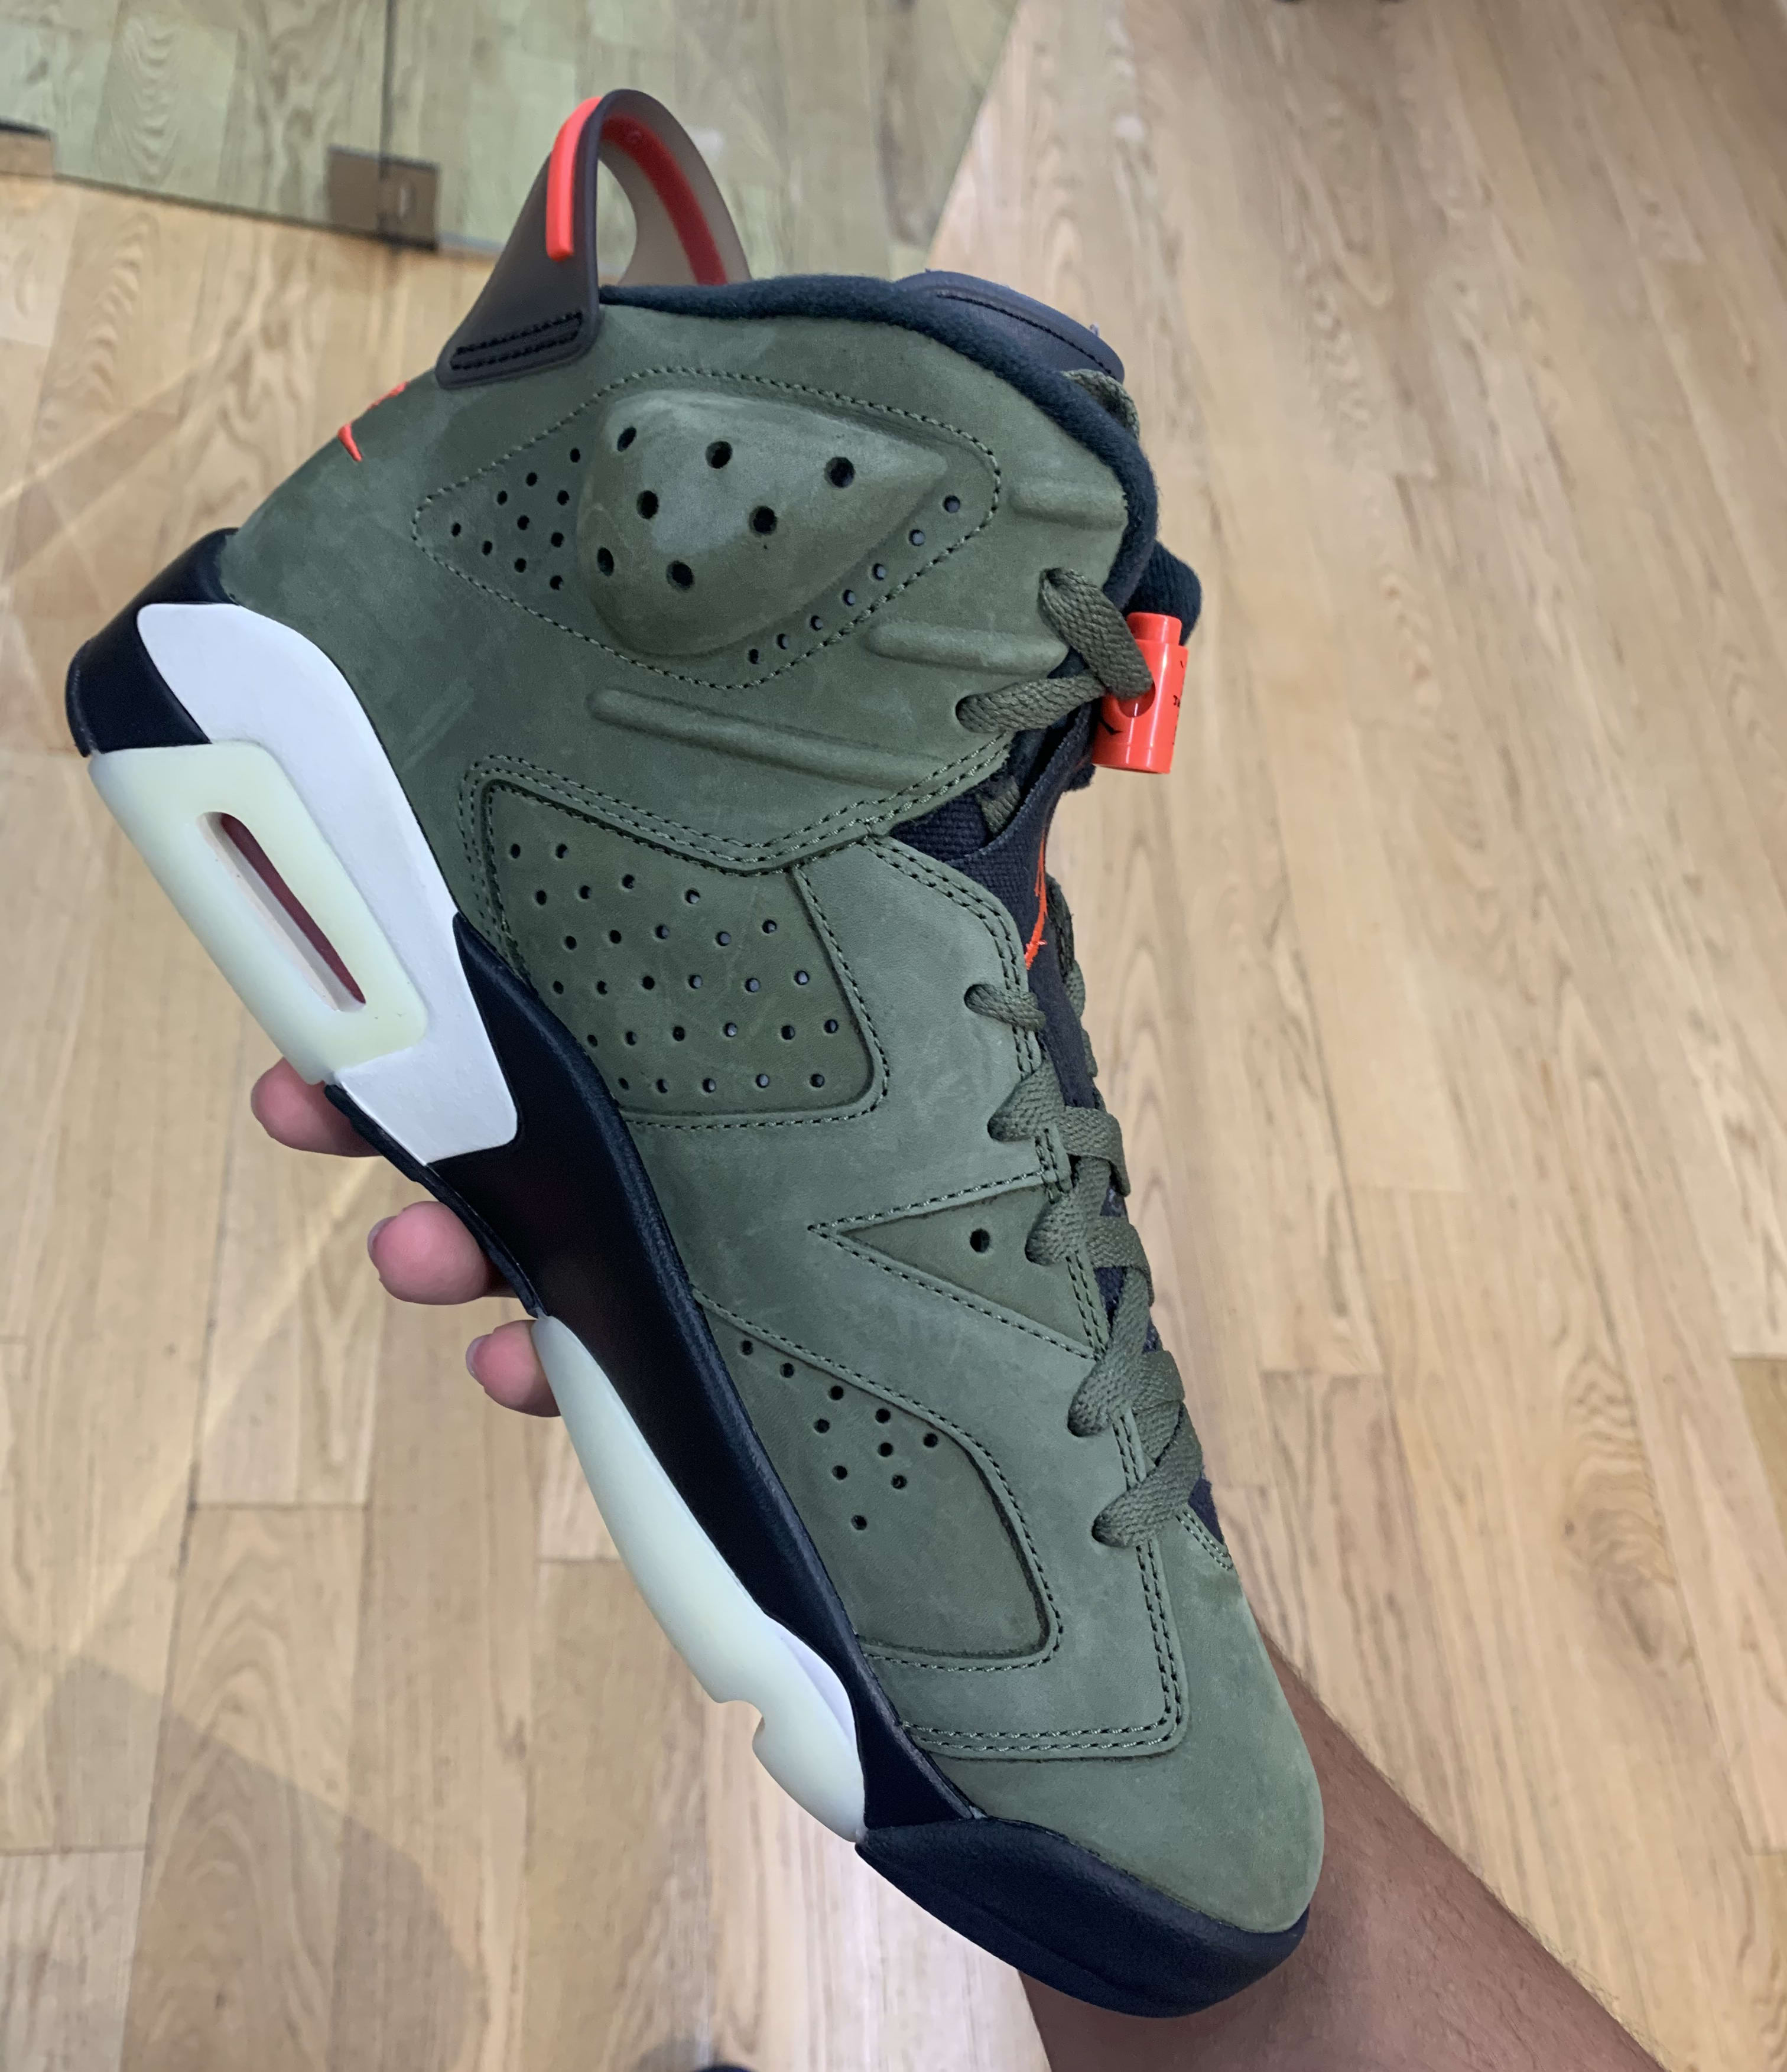 Travis Scott x Air Jordan 6 'Medium Olive/Black/Sail/University Red' CN1084-200 (Medial)